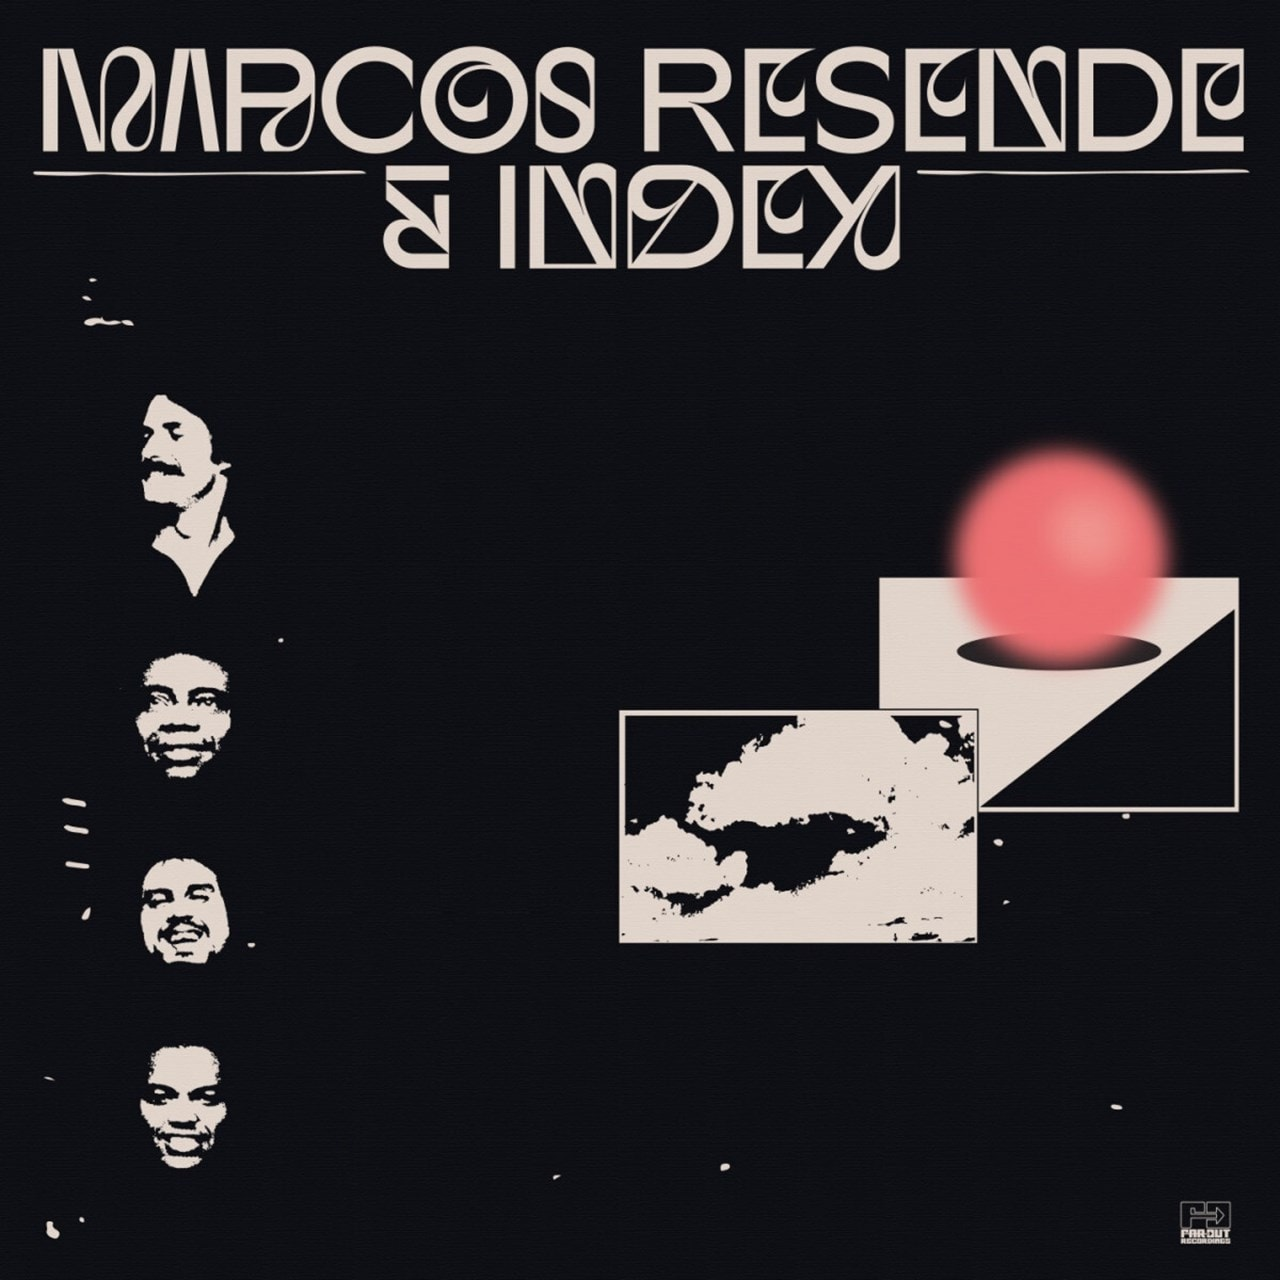 Marcos Resende & Index - 1